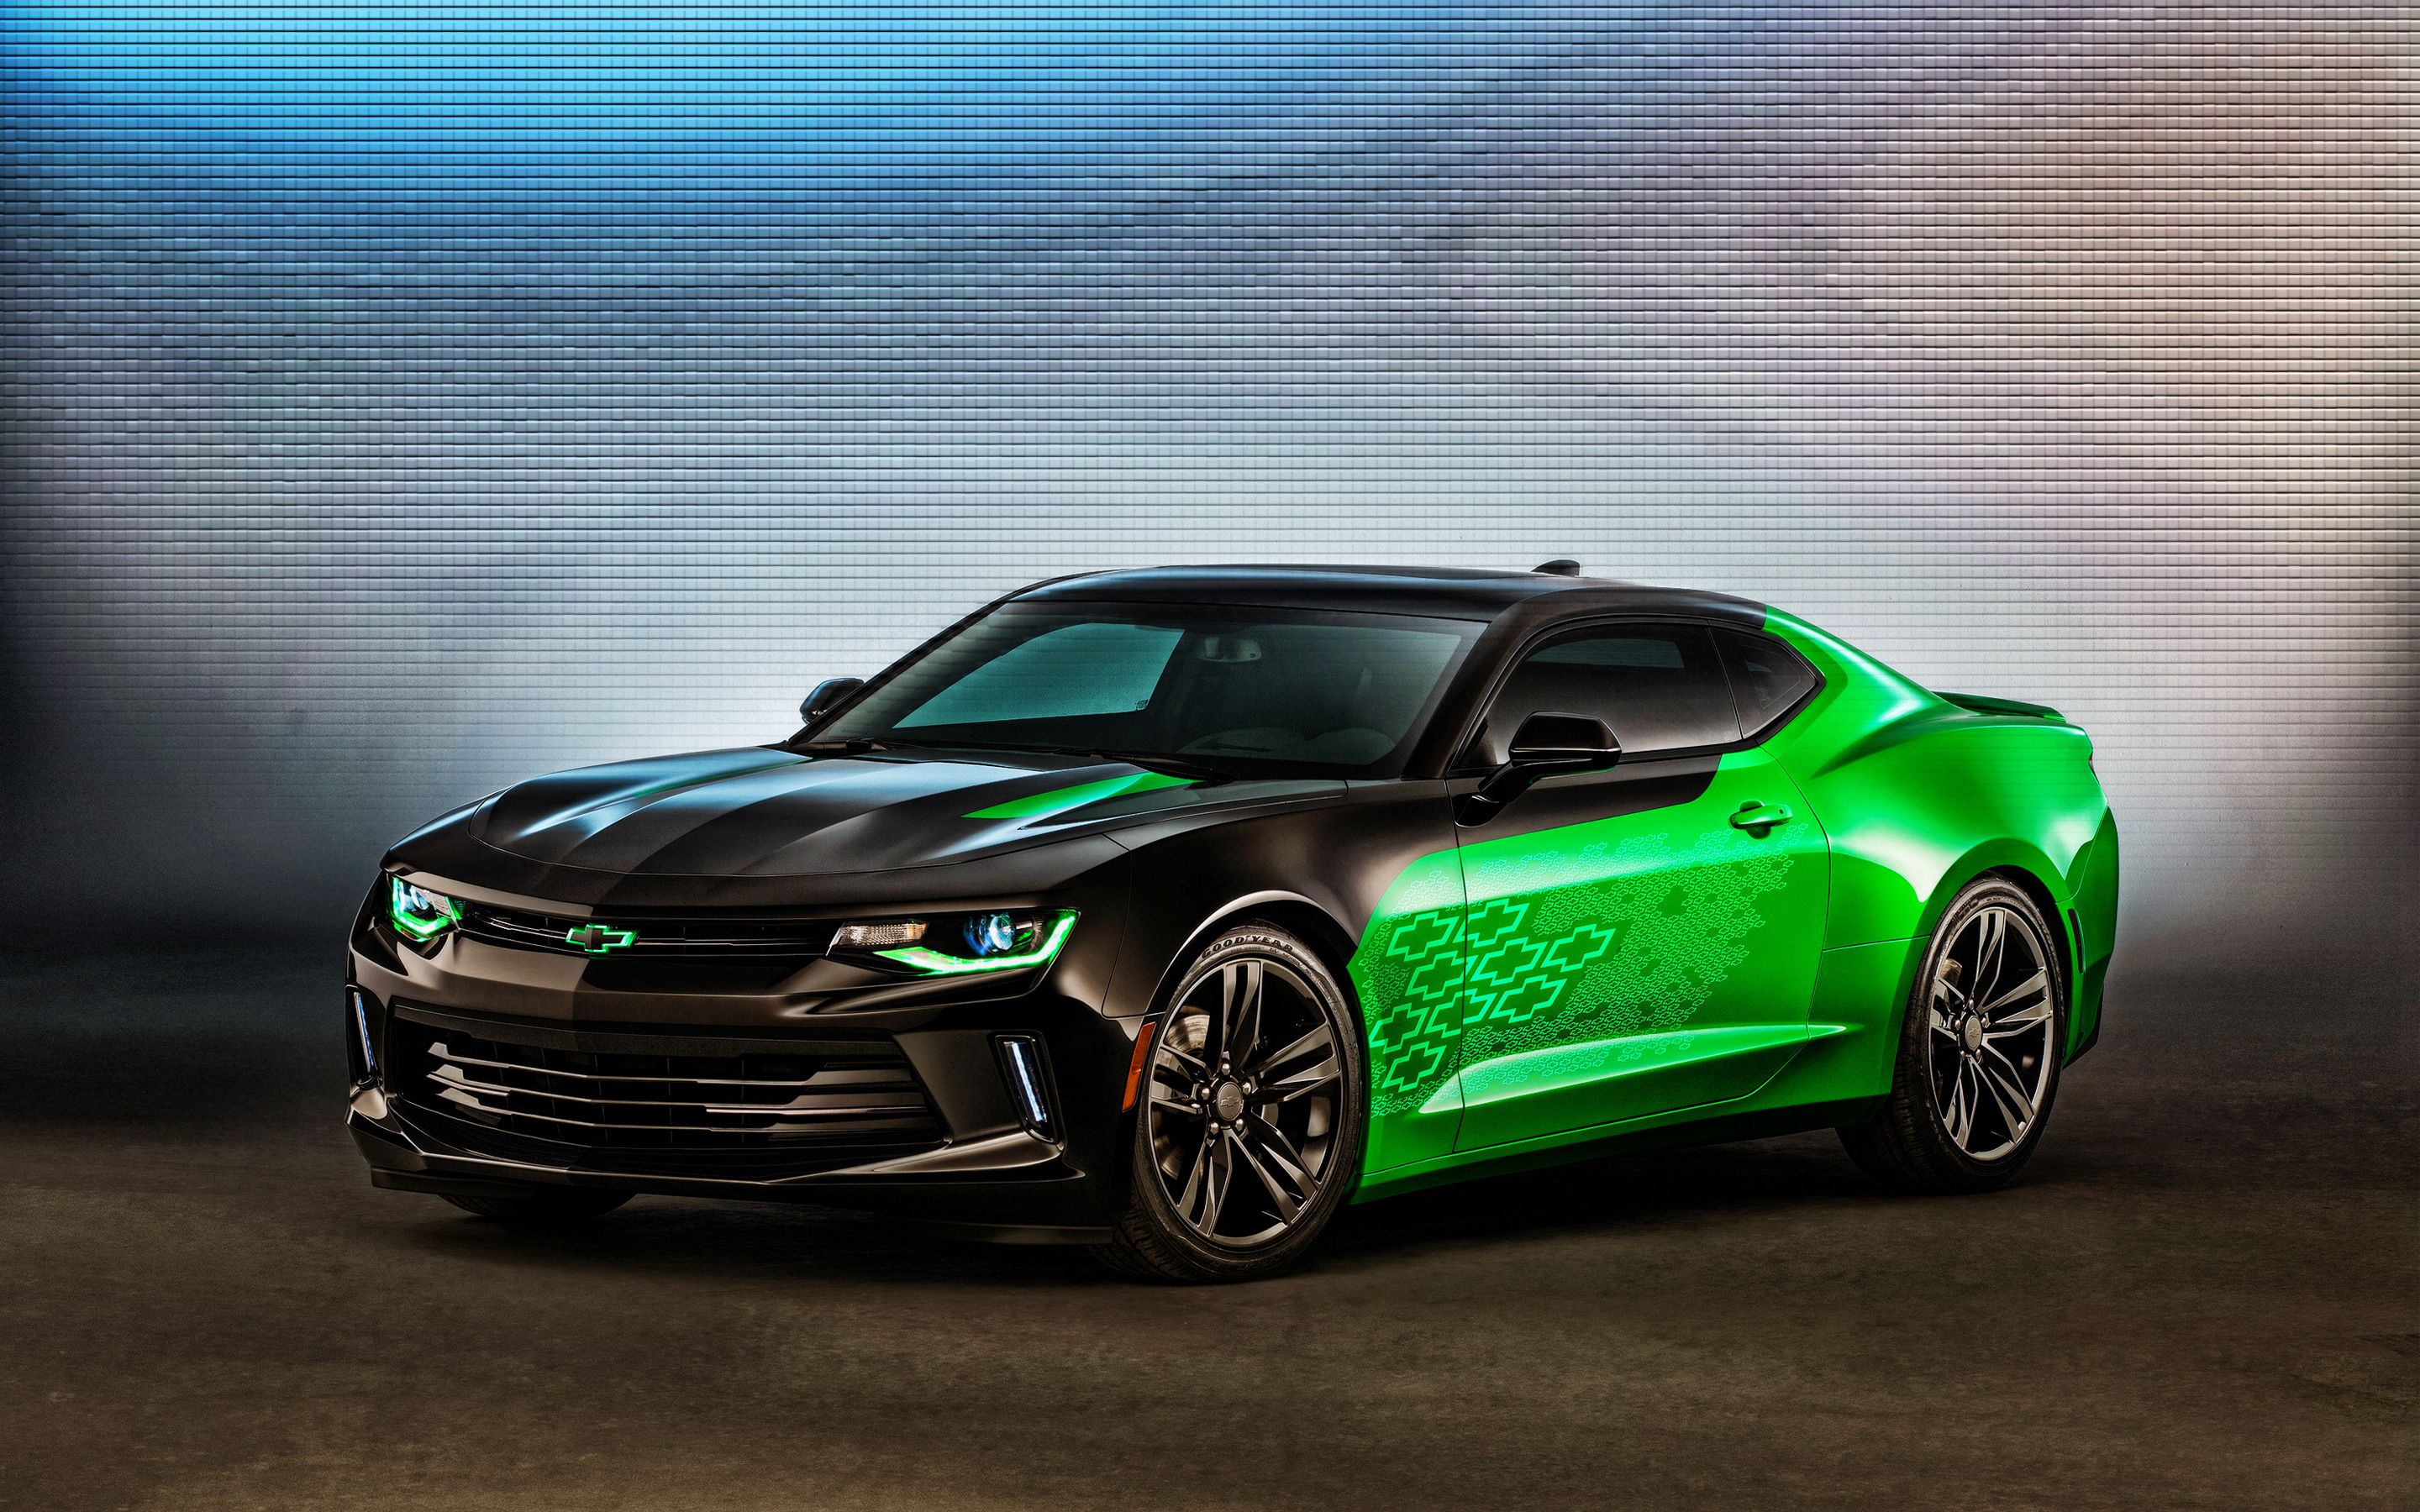 2016 Chevy Camaro Wallpaper  HD Car Wallpapers